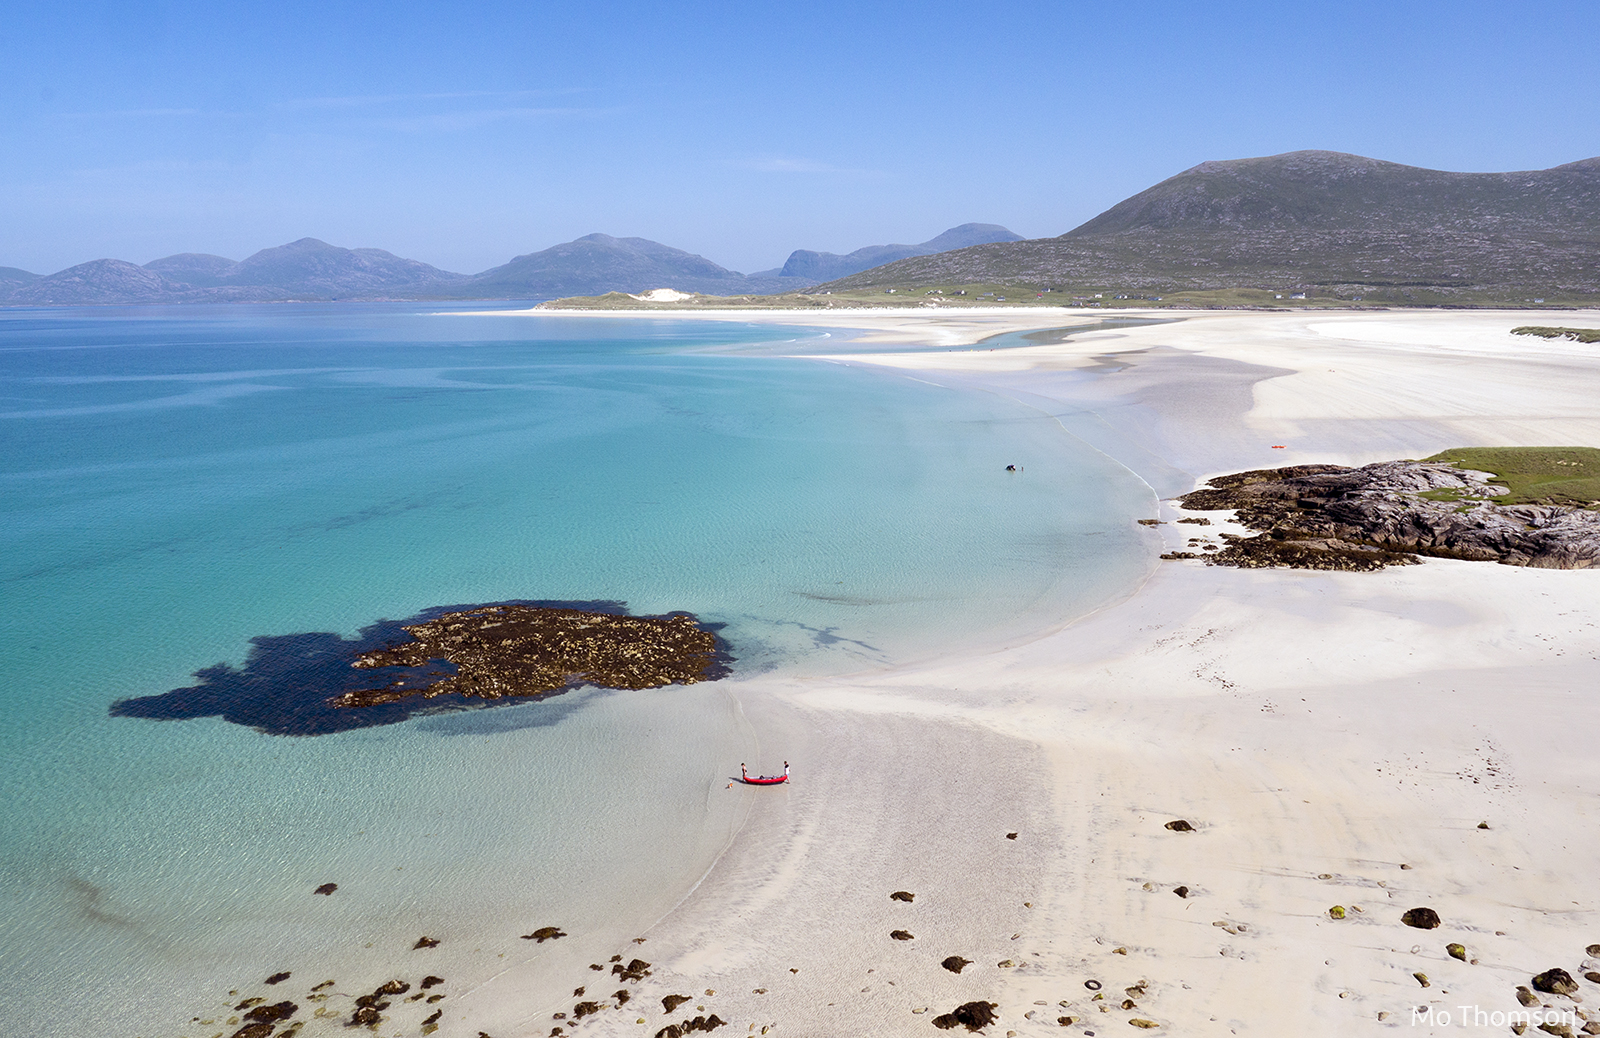 Luskentyre beach in Scotland is one of the 10 best beach getaways this year.